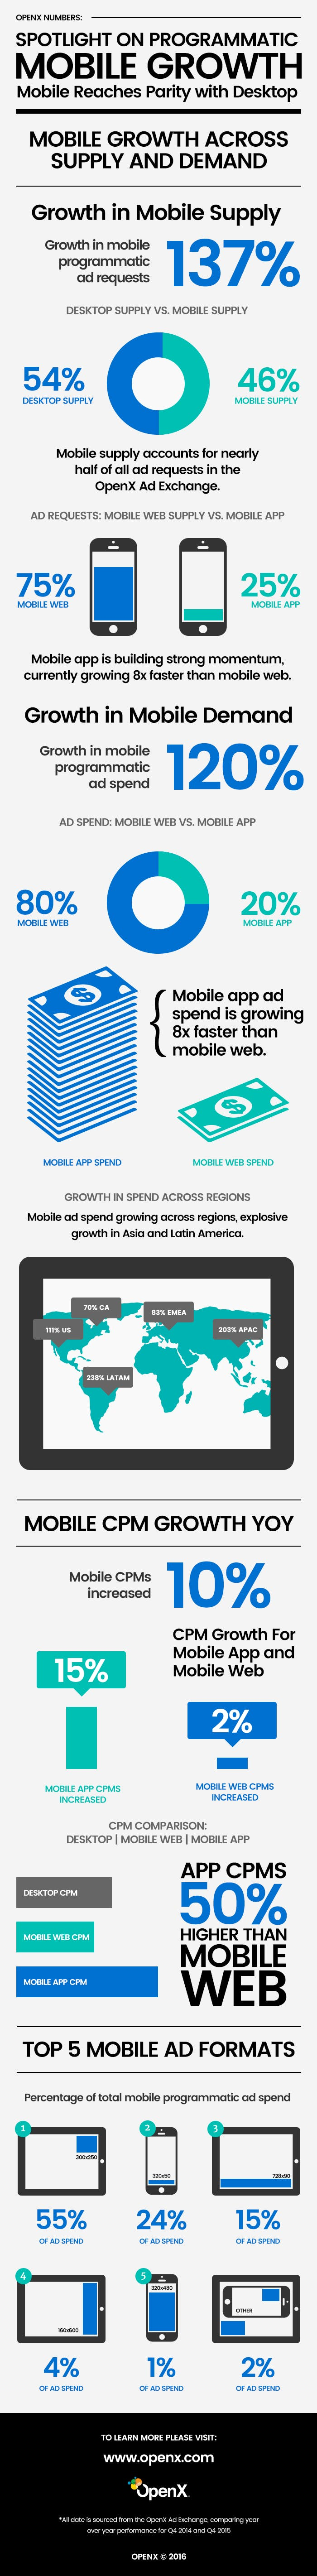 OpenX Mobile Growth